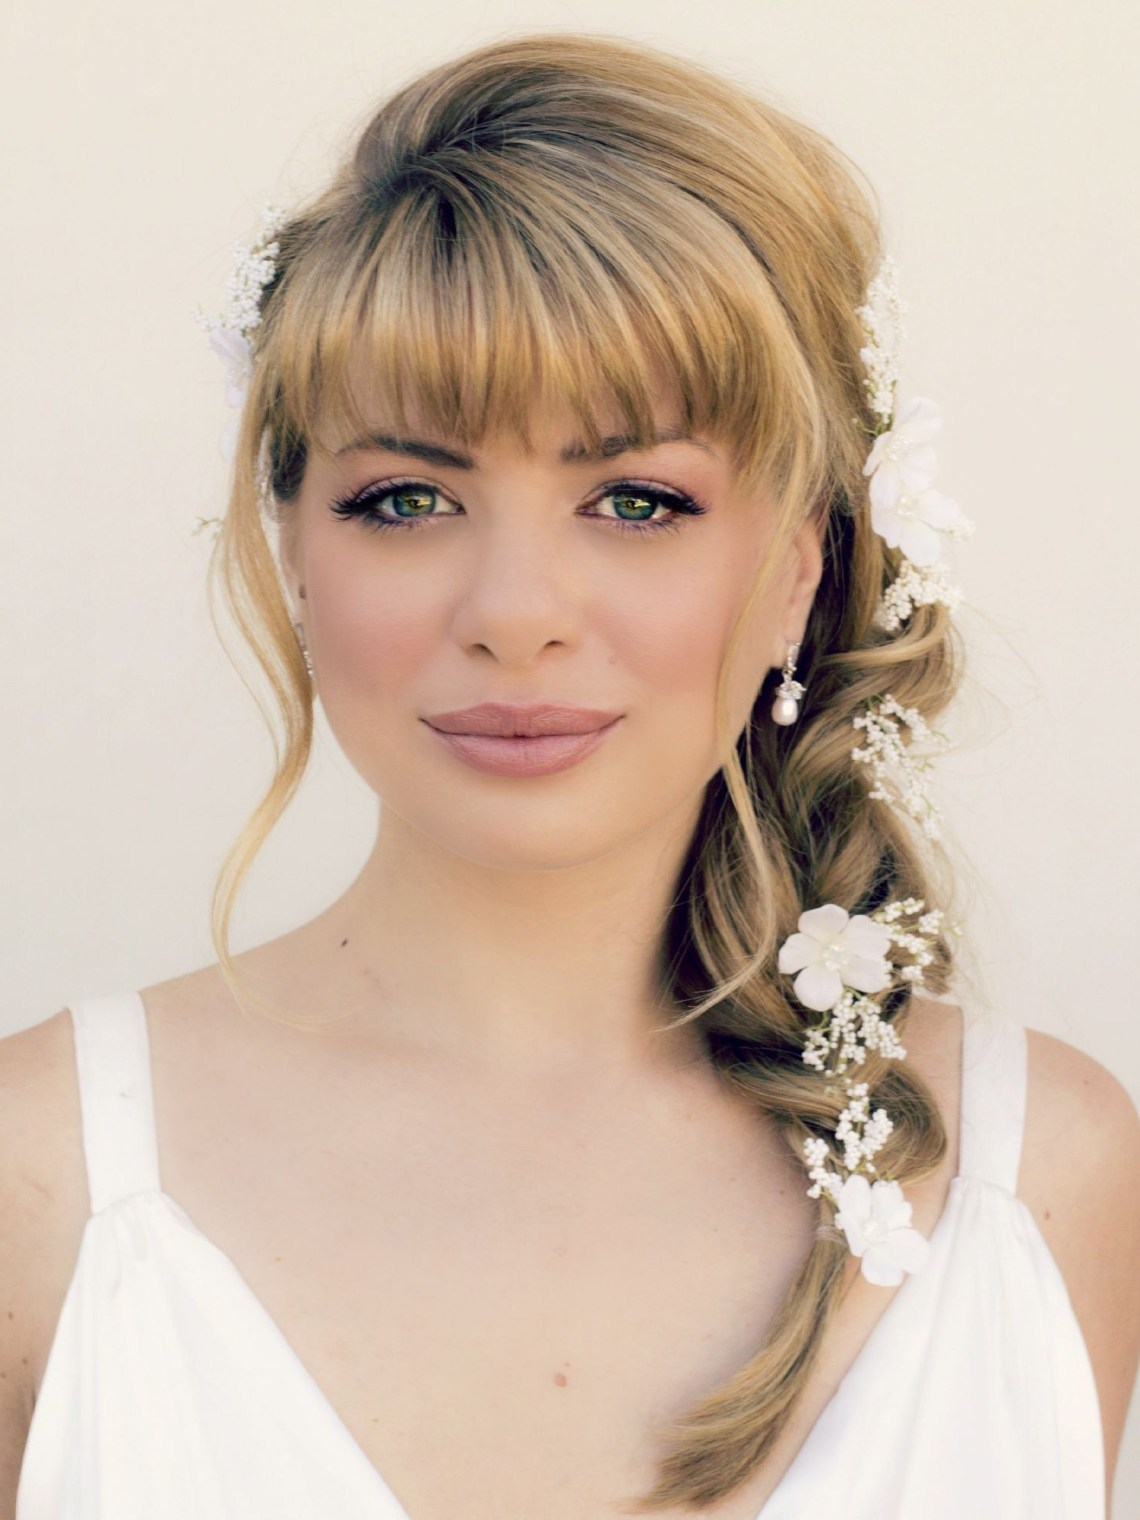 Side Bride Bridal Hairstyle With Bangs 2 (1500×2000 Wedding Hairstyles For Medium Length Hair With Bangs